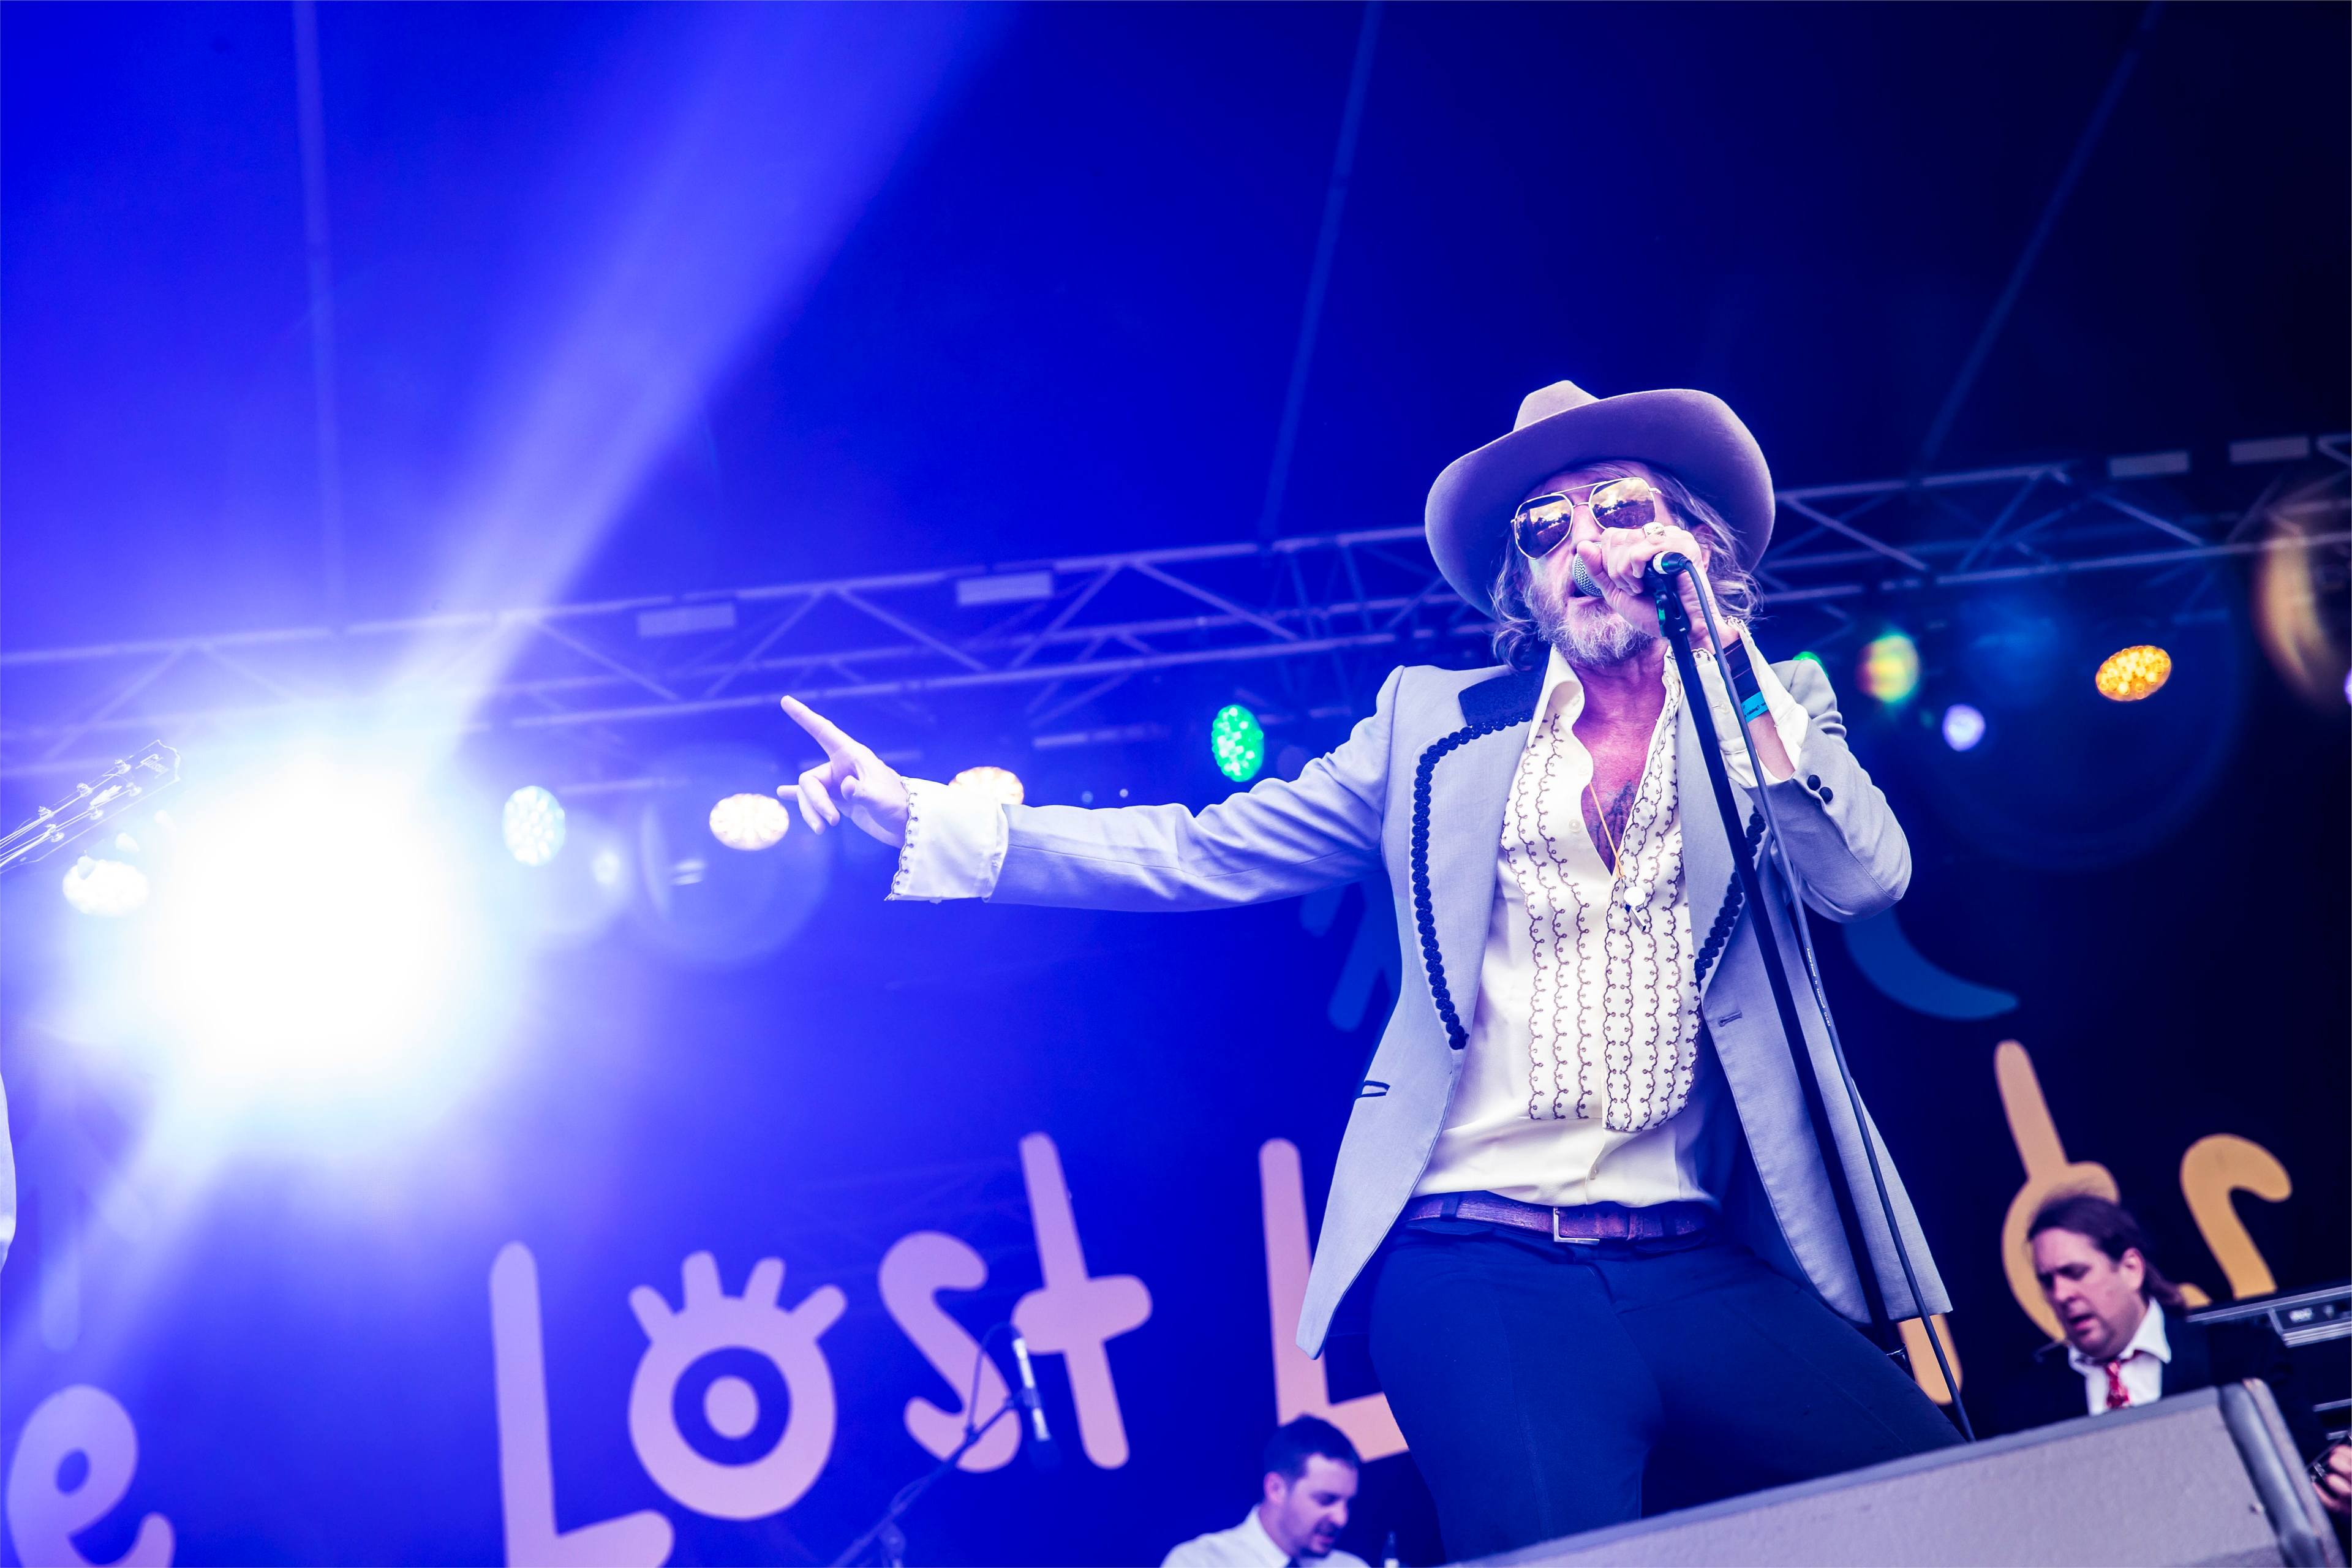 Tim Rogers performing at The Lost Lands 2016